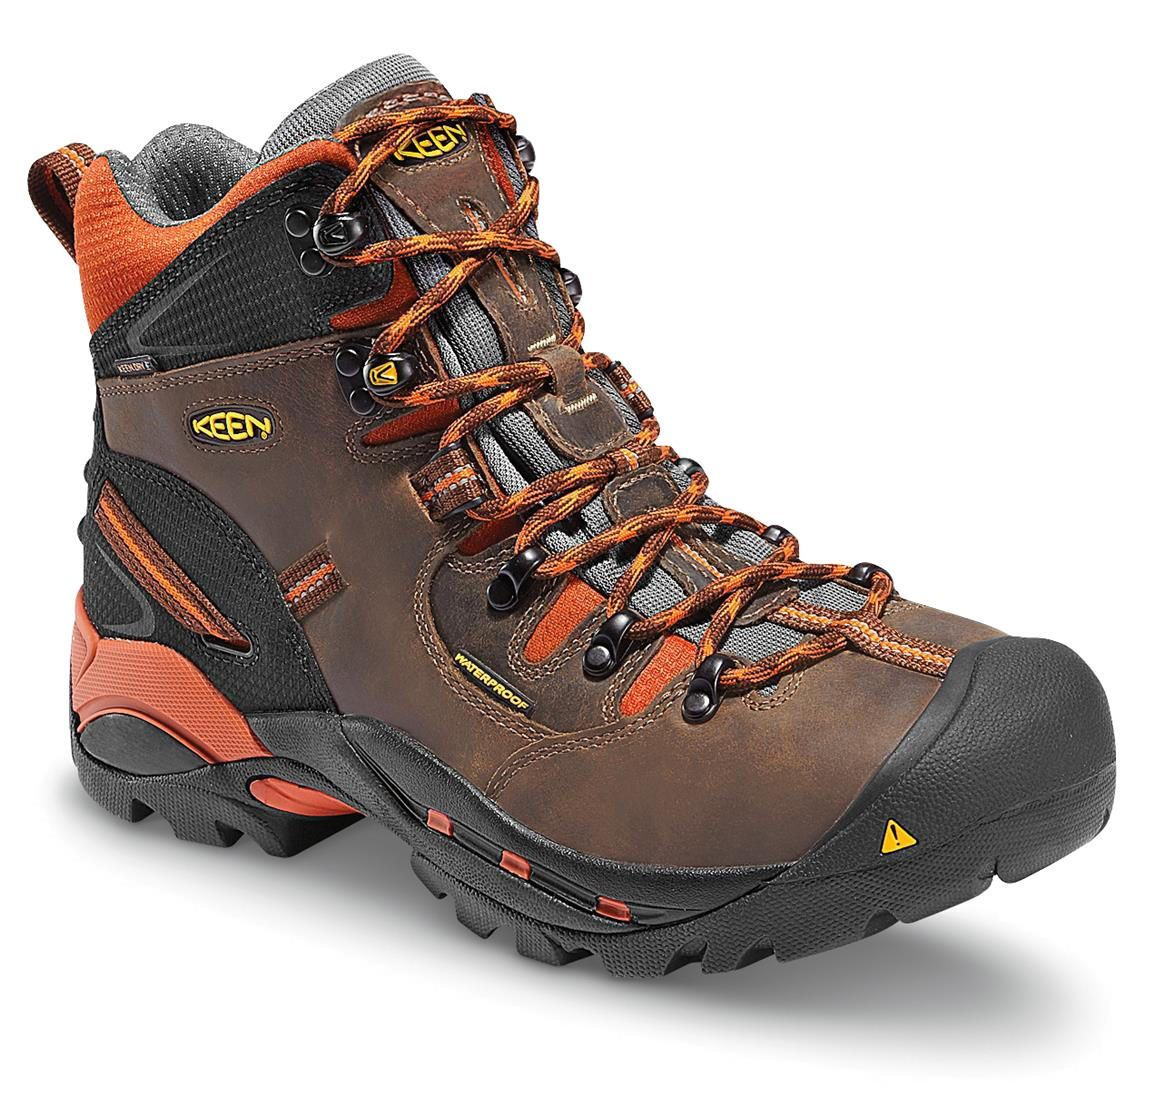 f7a6494a40a 10 Best Work Boots 2019 | Steel Toe Boots